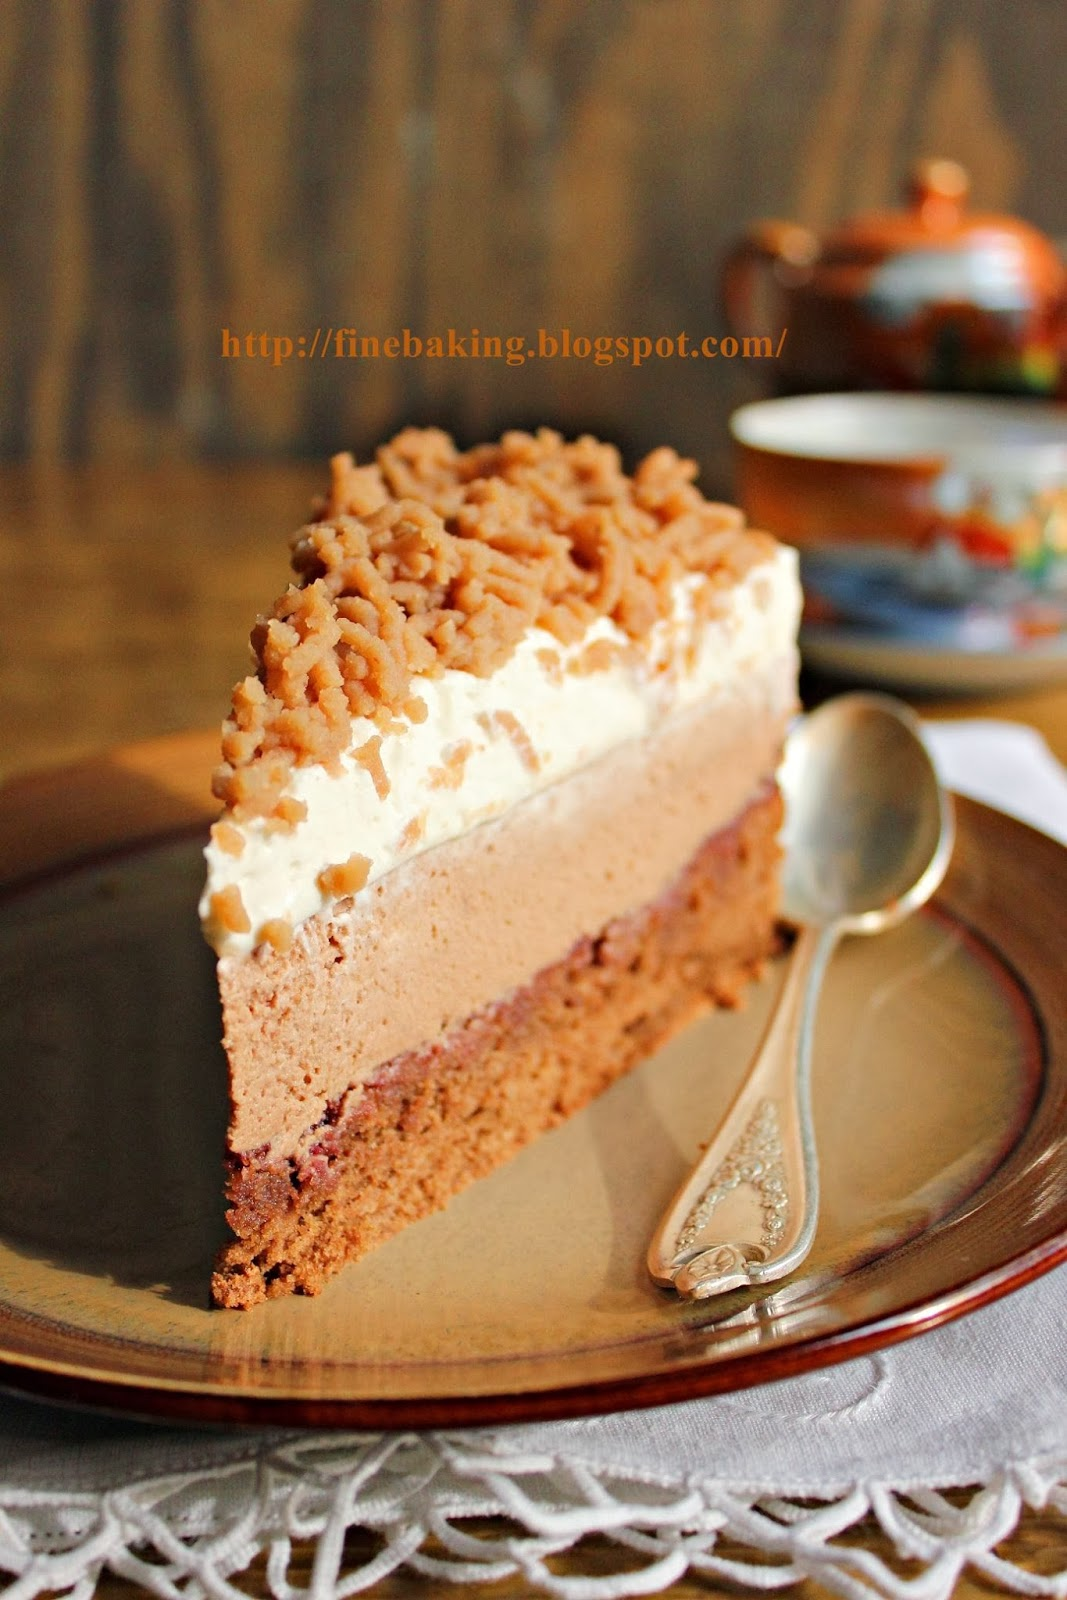 Chocolate Dust Chestnut Cream Cake